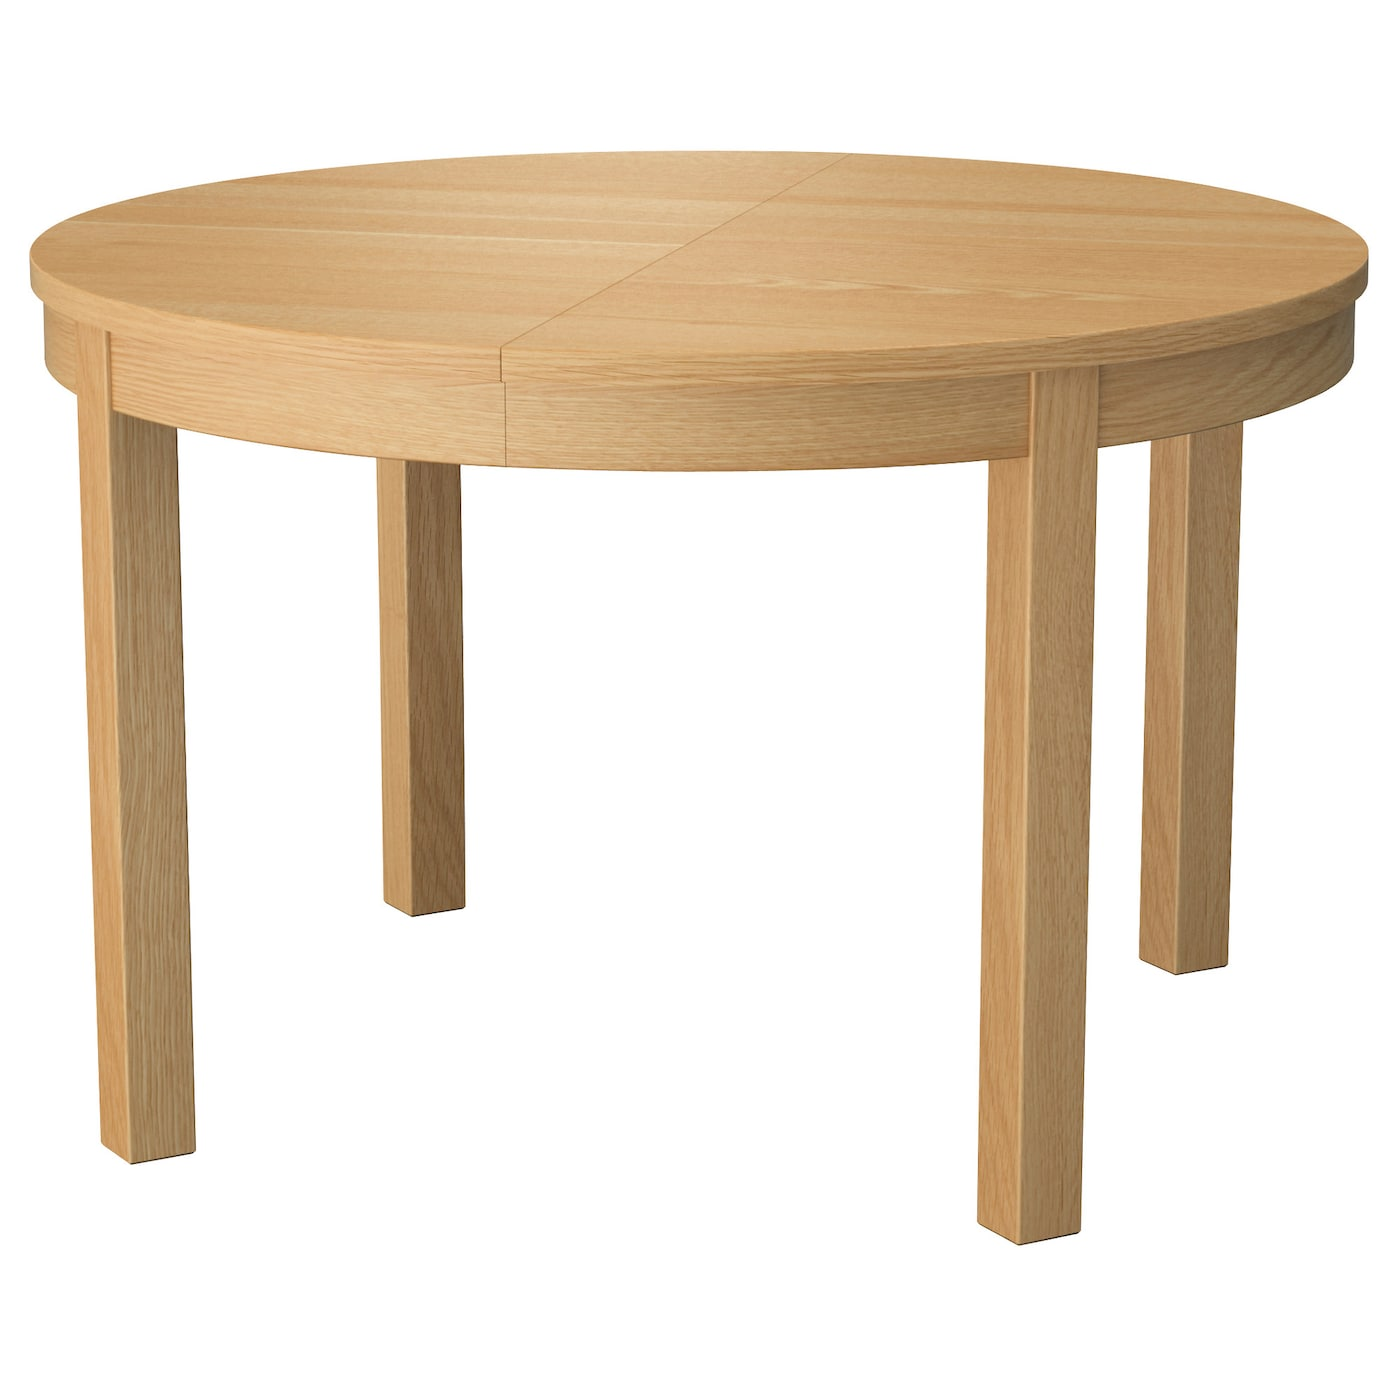 Ikea Table Dining: Round Dining Tables